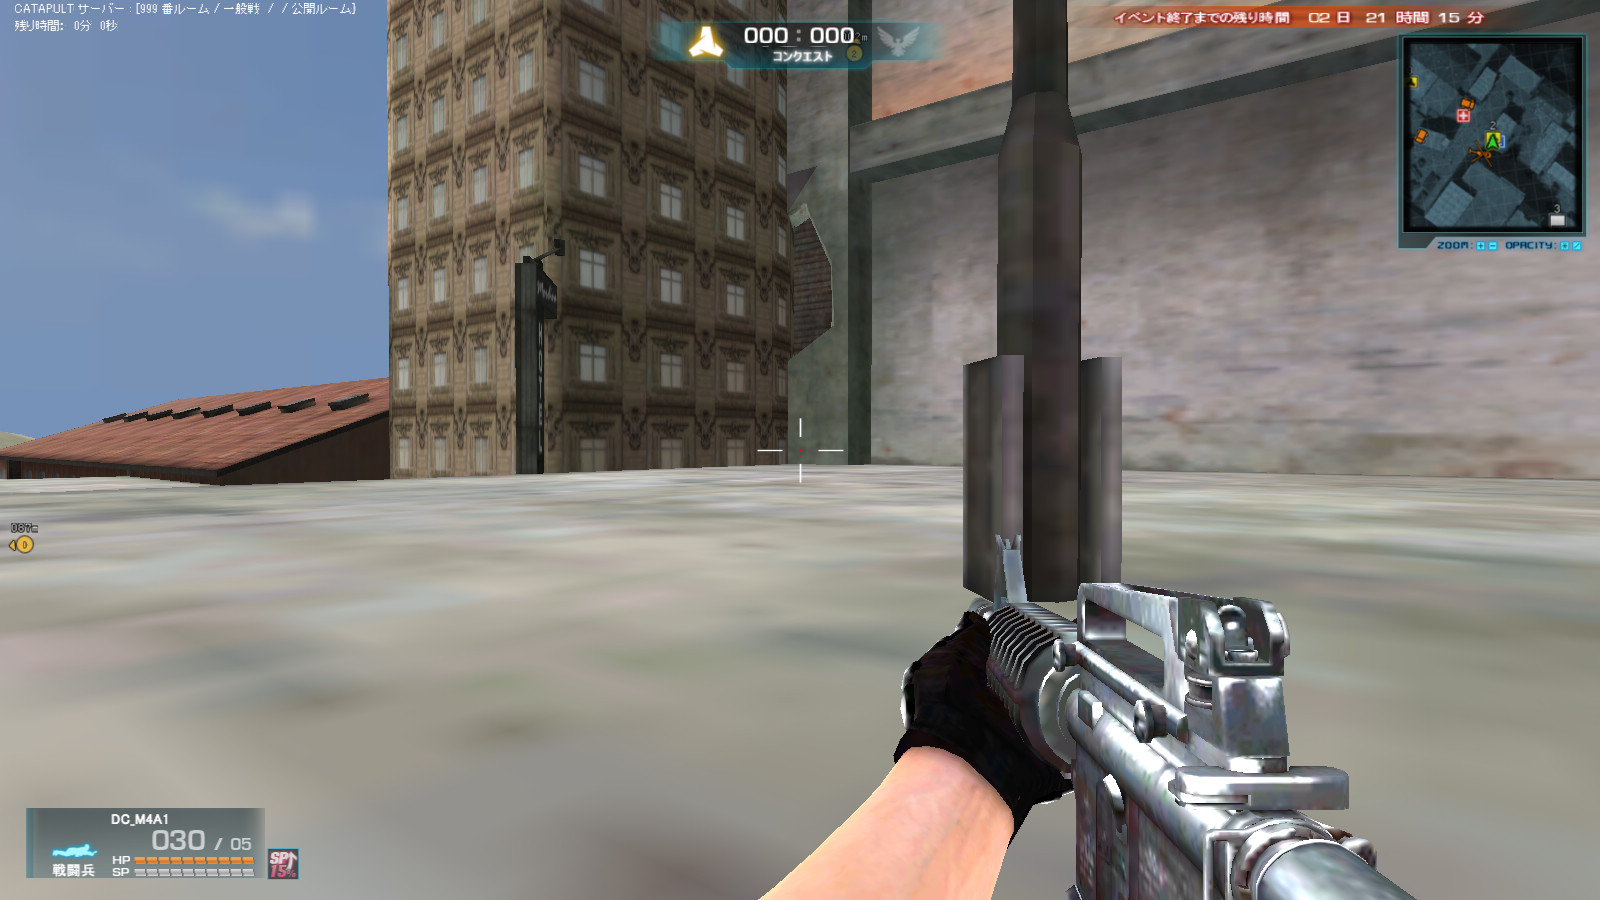 screenshot_347.jpg